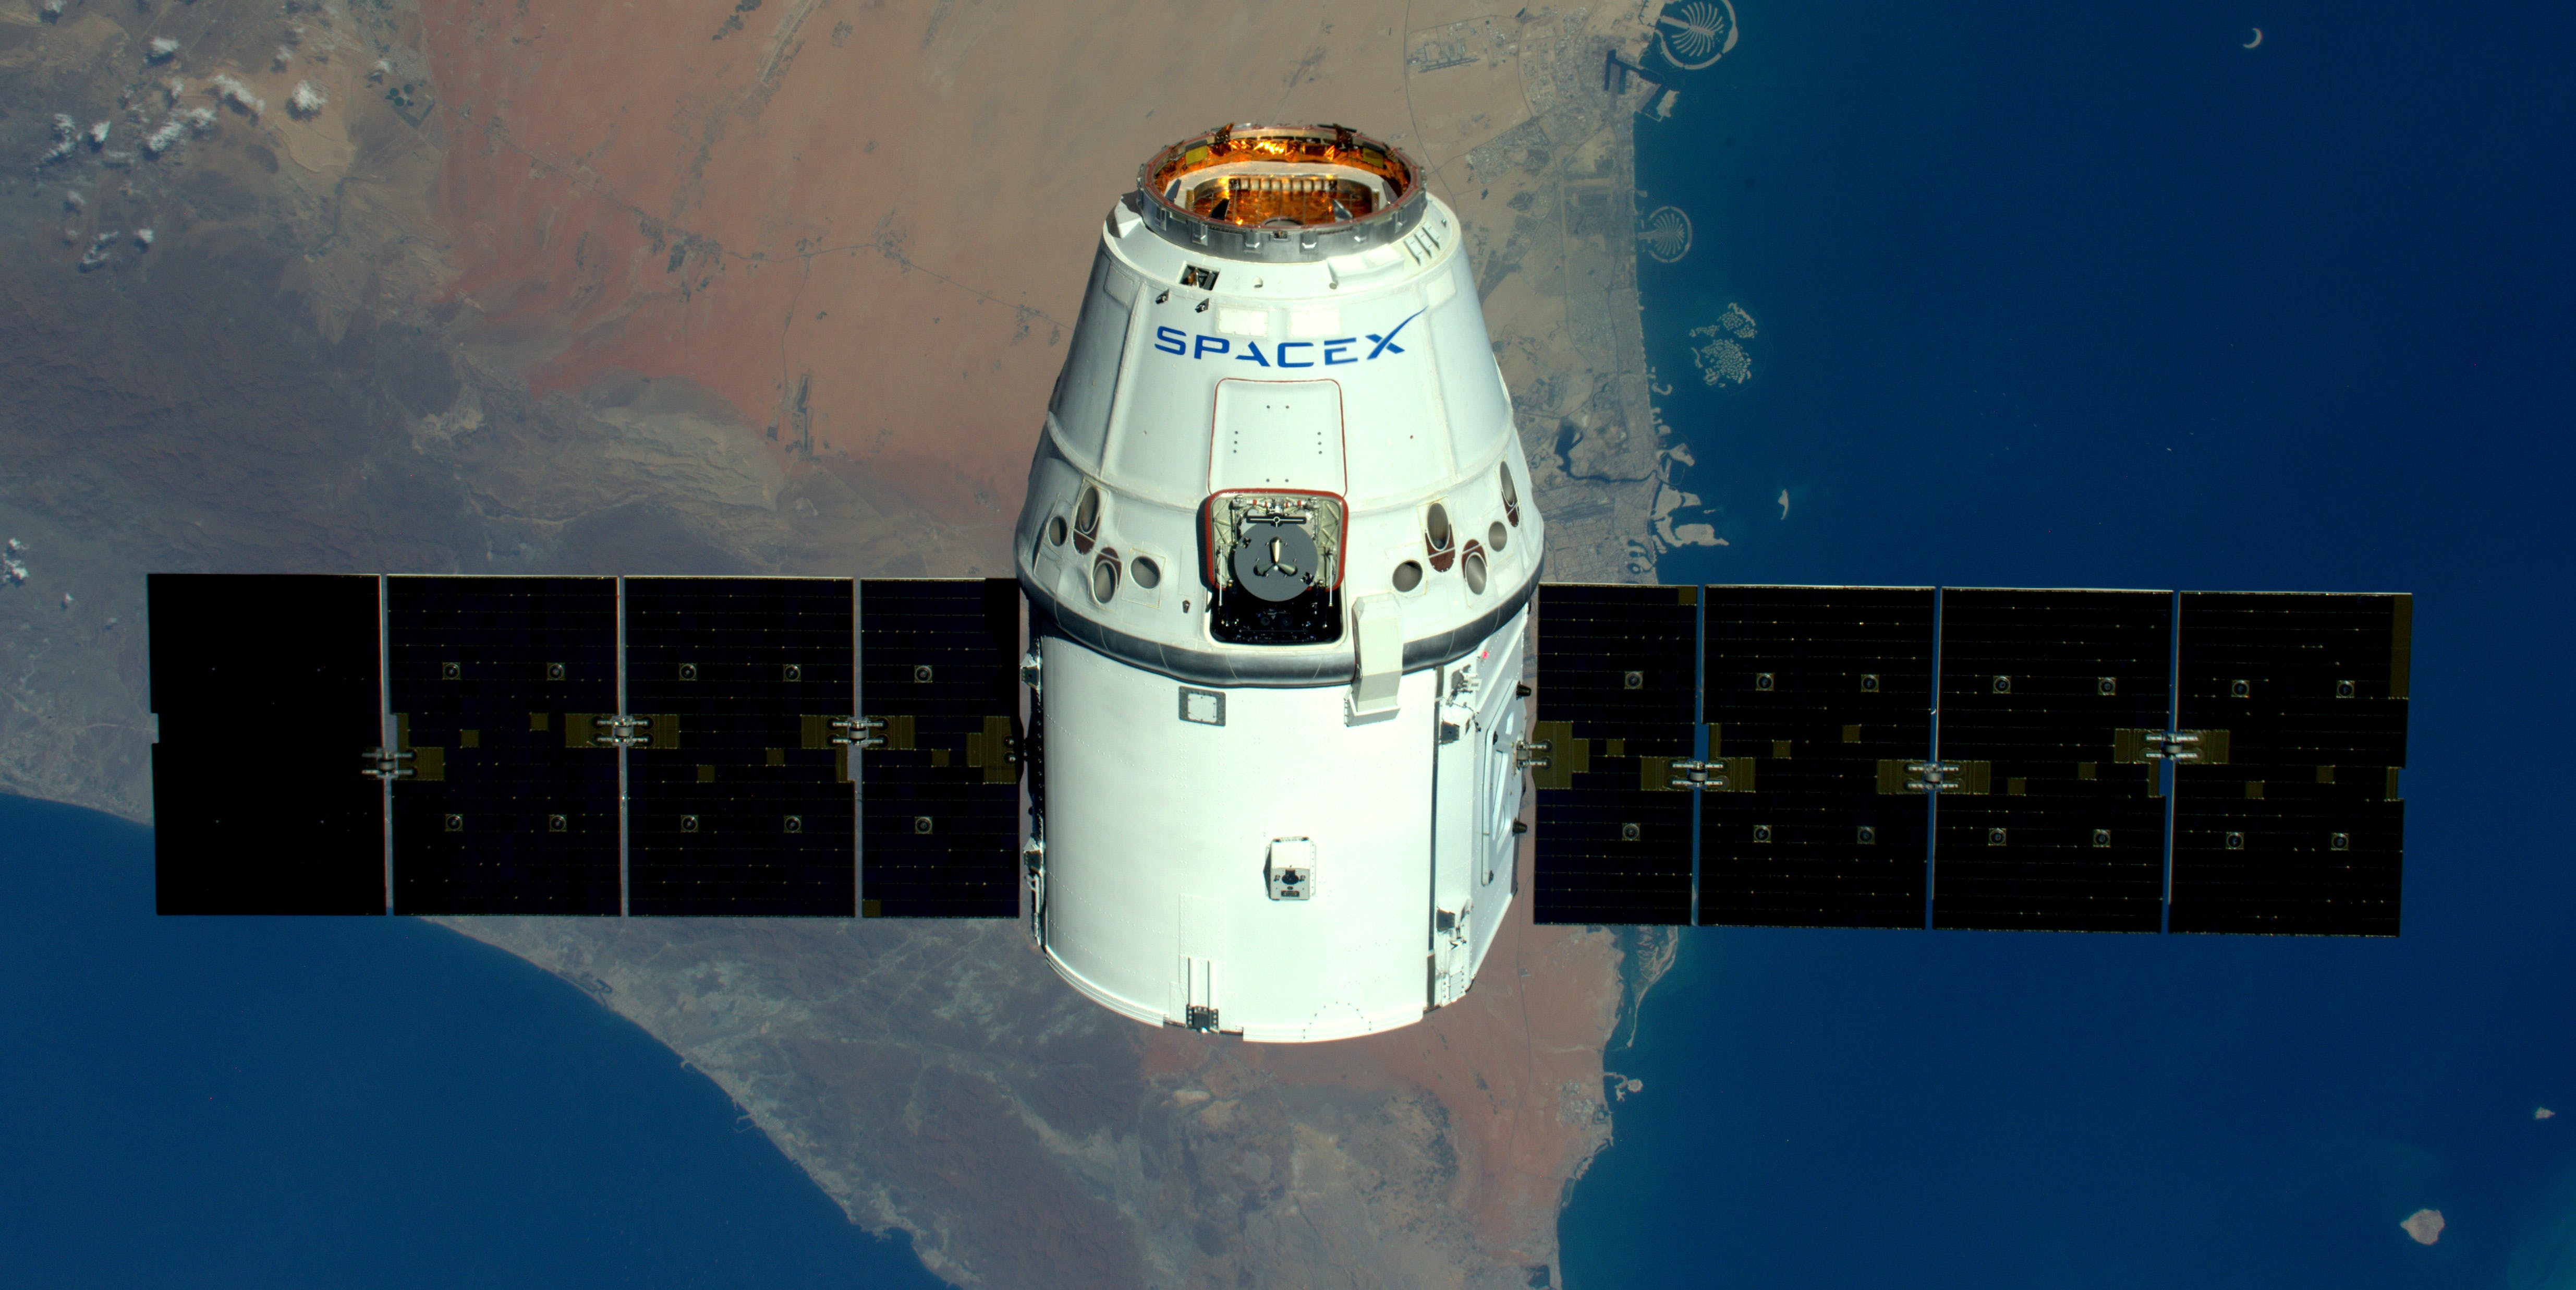 A SpaceX Dragon capsule makes its way to the space station following a successful launch on April 8, 2016.